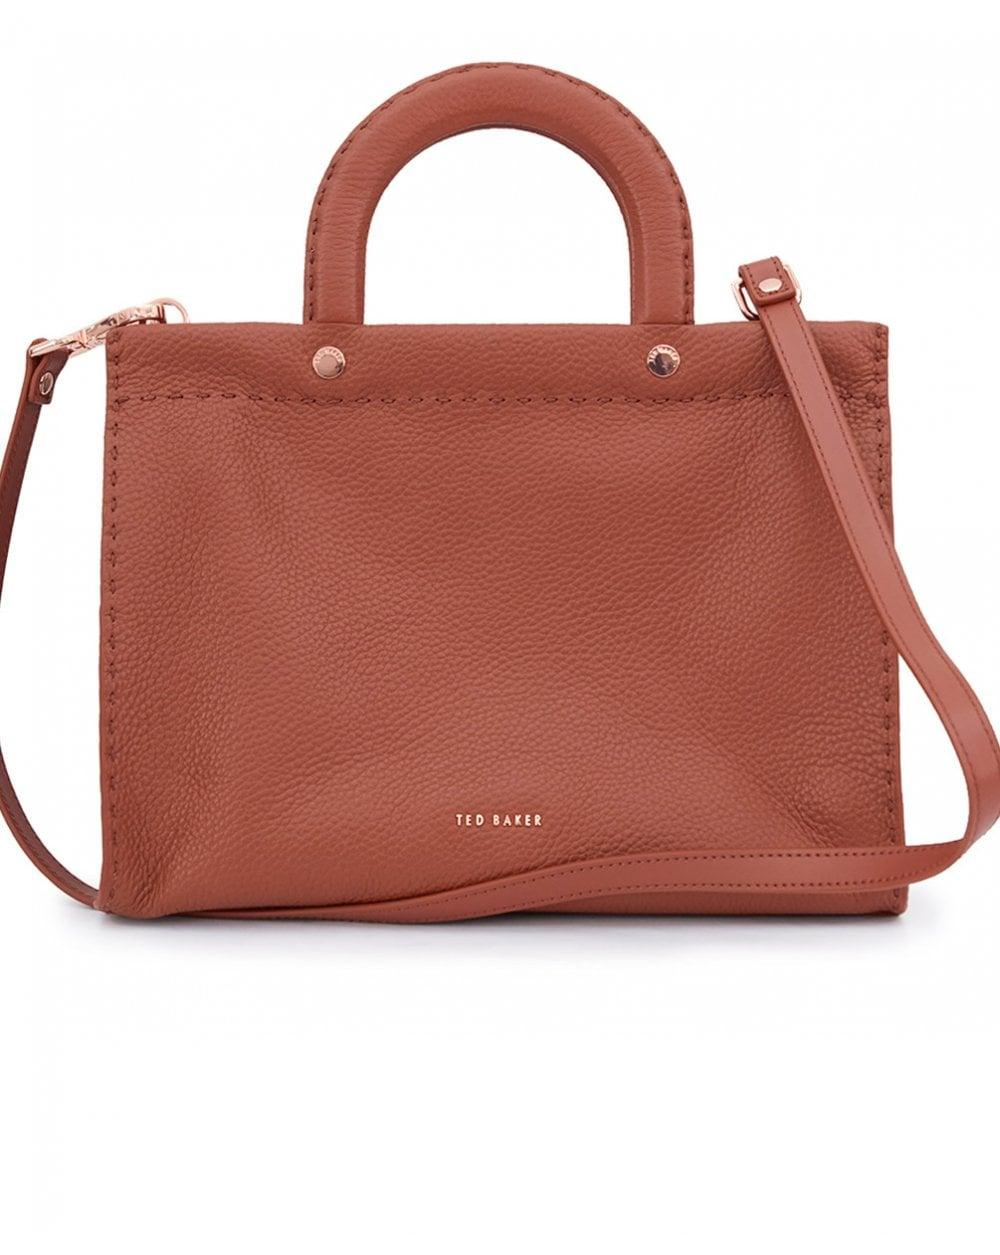 ced9b6abd0 Ted Baker - Brown Leather Stitch Detail Small Tote Bag - Lyst. View  fullscreen